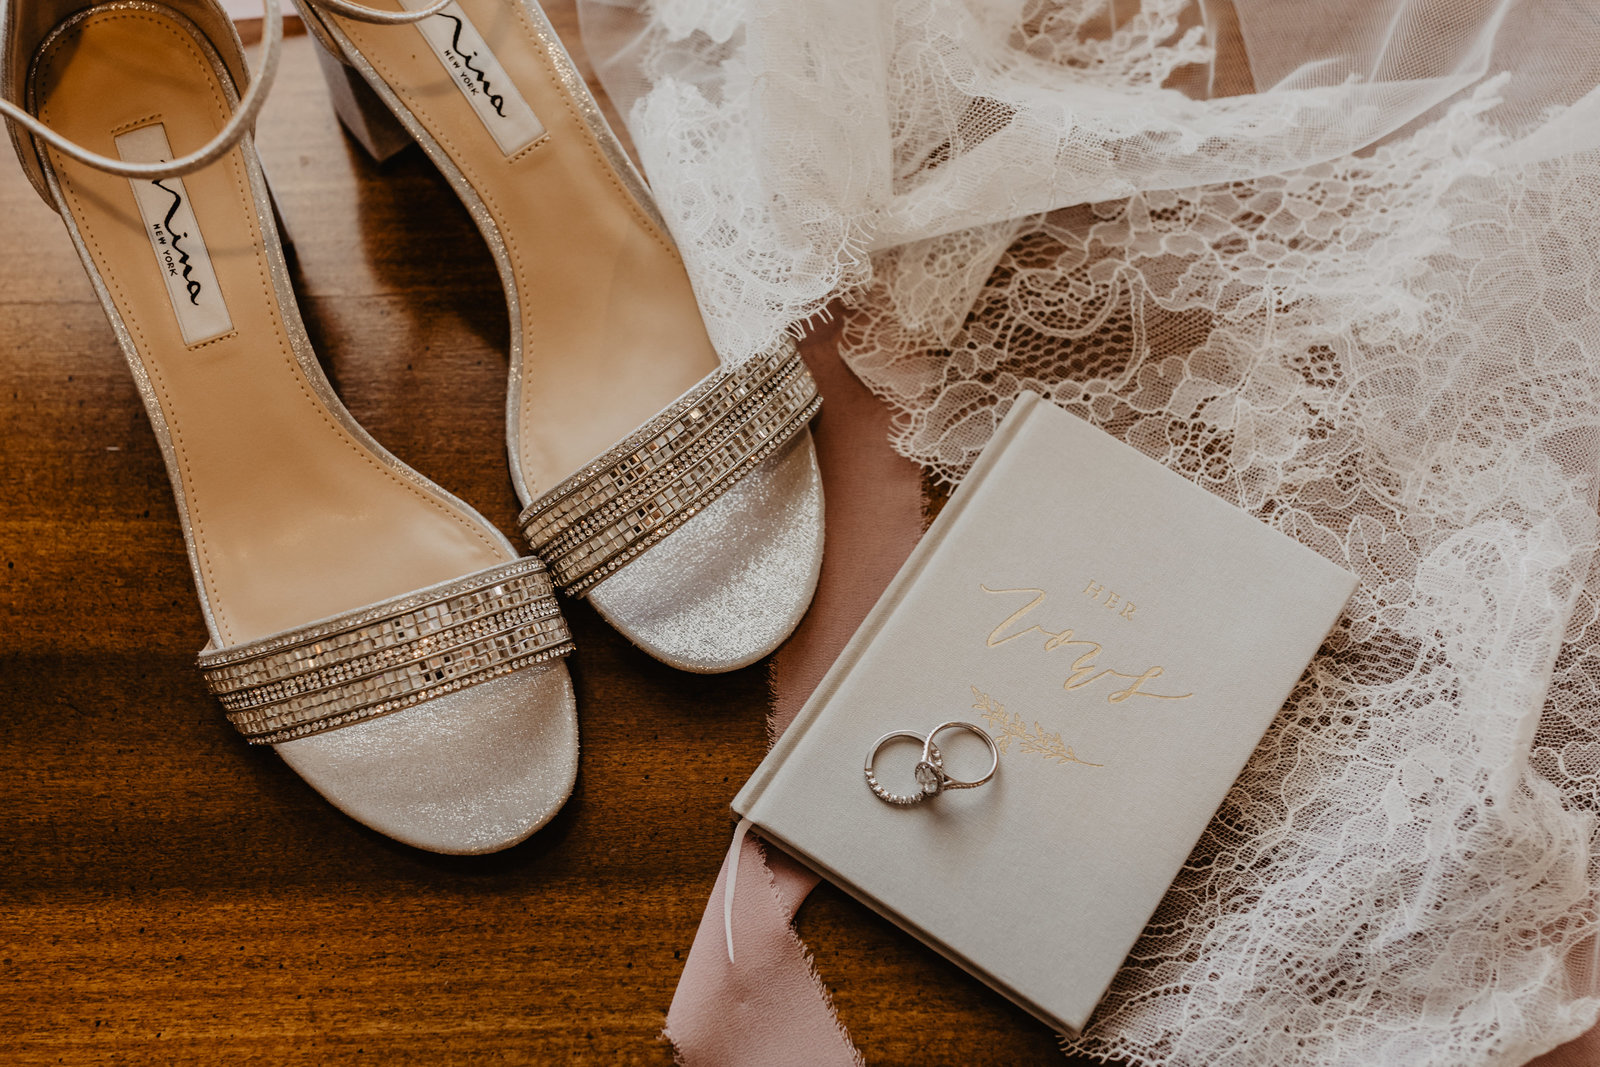 Bridal details complete with rings, vow book and wedding shoes with veil lace accent at Saddle Woods Farm.